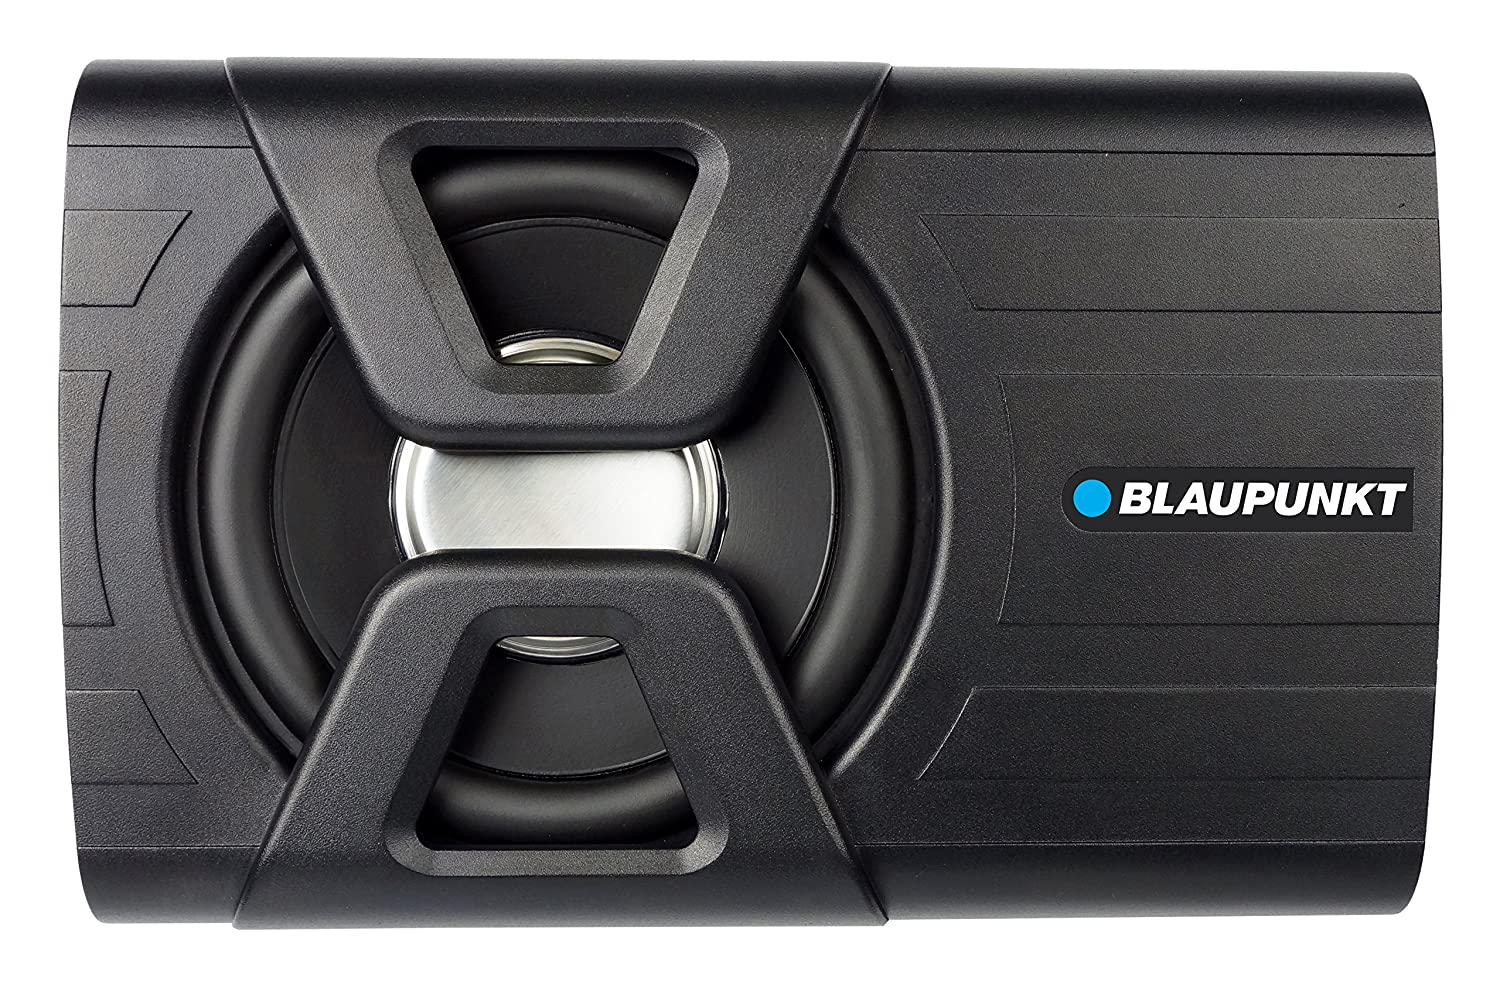 Blaupunkt 300w 8 Inch Amplified Subwoofer Cell Phones Home Gt Car Audio Amplifier Kit Amp Wiring Pyramid 8ga Accessories